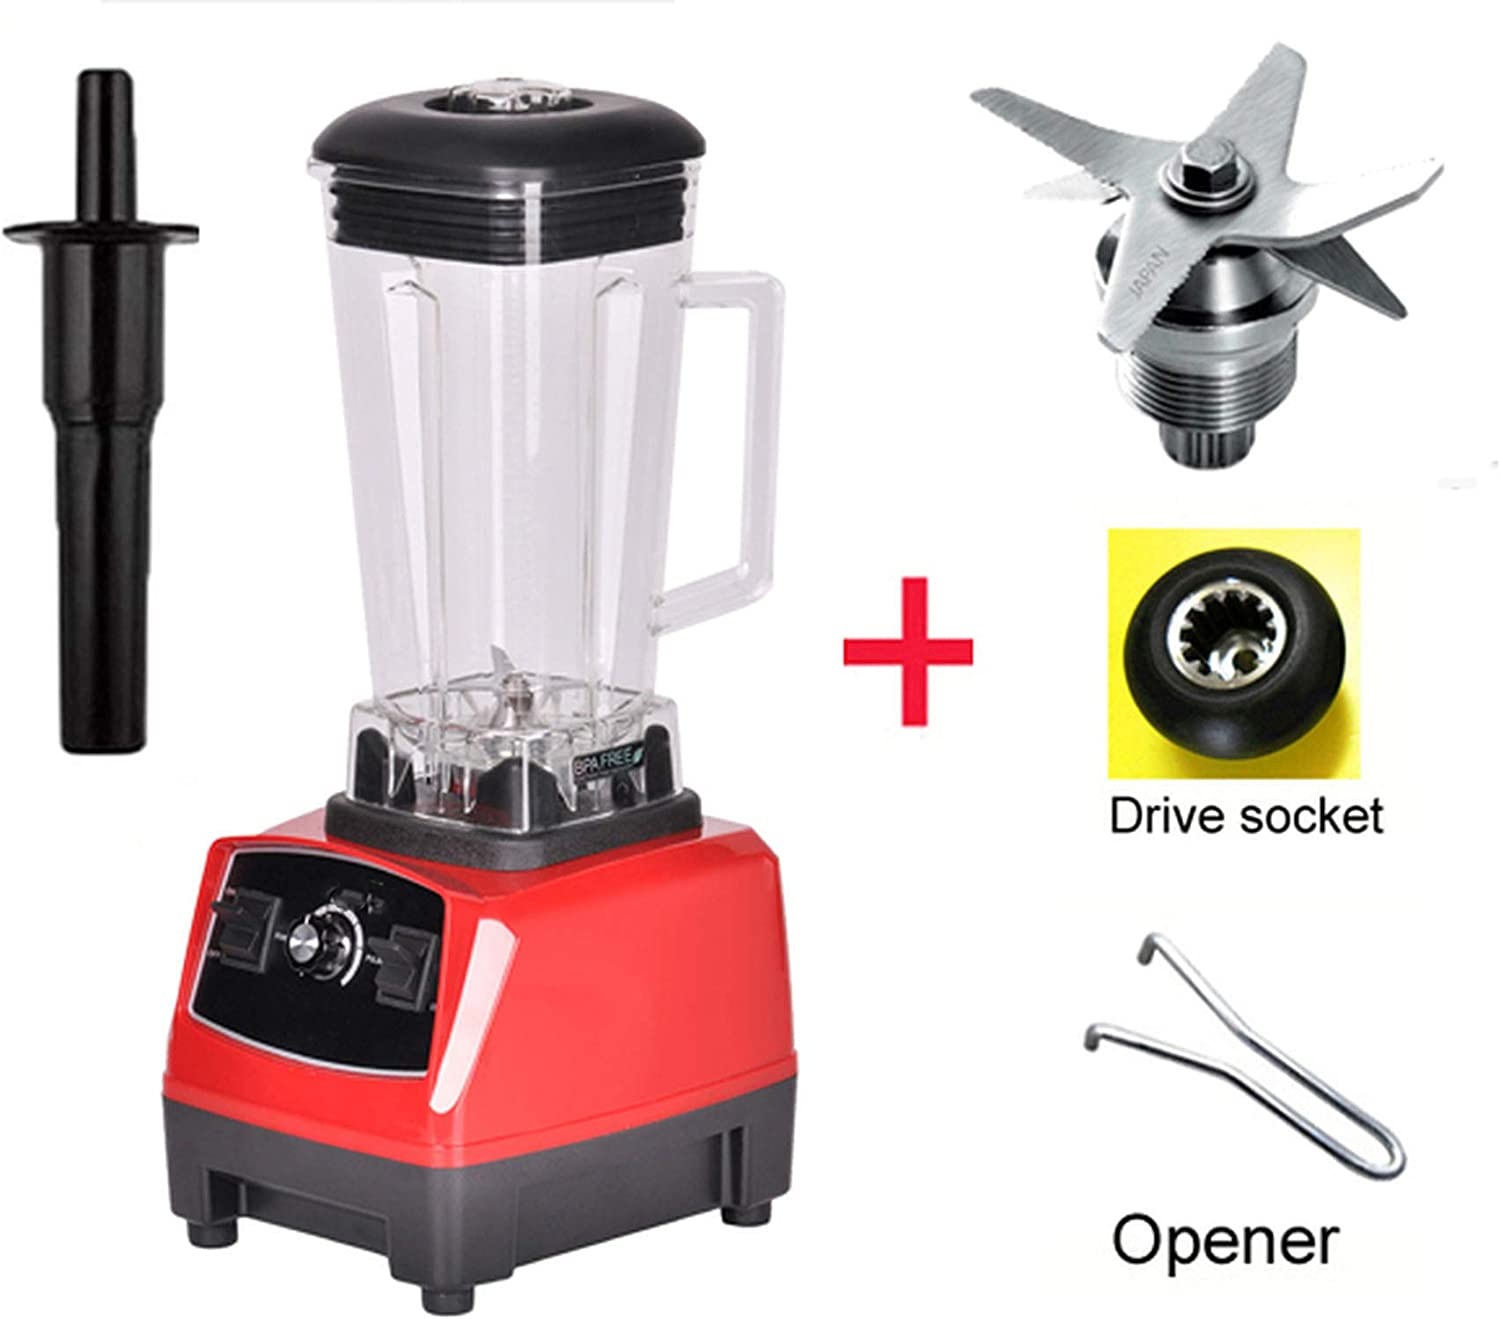 2200W BPA FREE 3HP 2L G5200 high power commercial home professional smoothies power blender food mixer juicer fruit processor,RED FULL PARTS